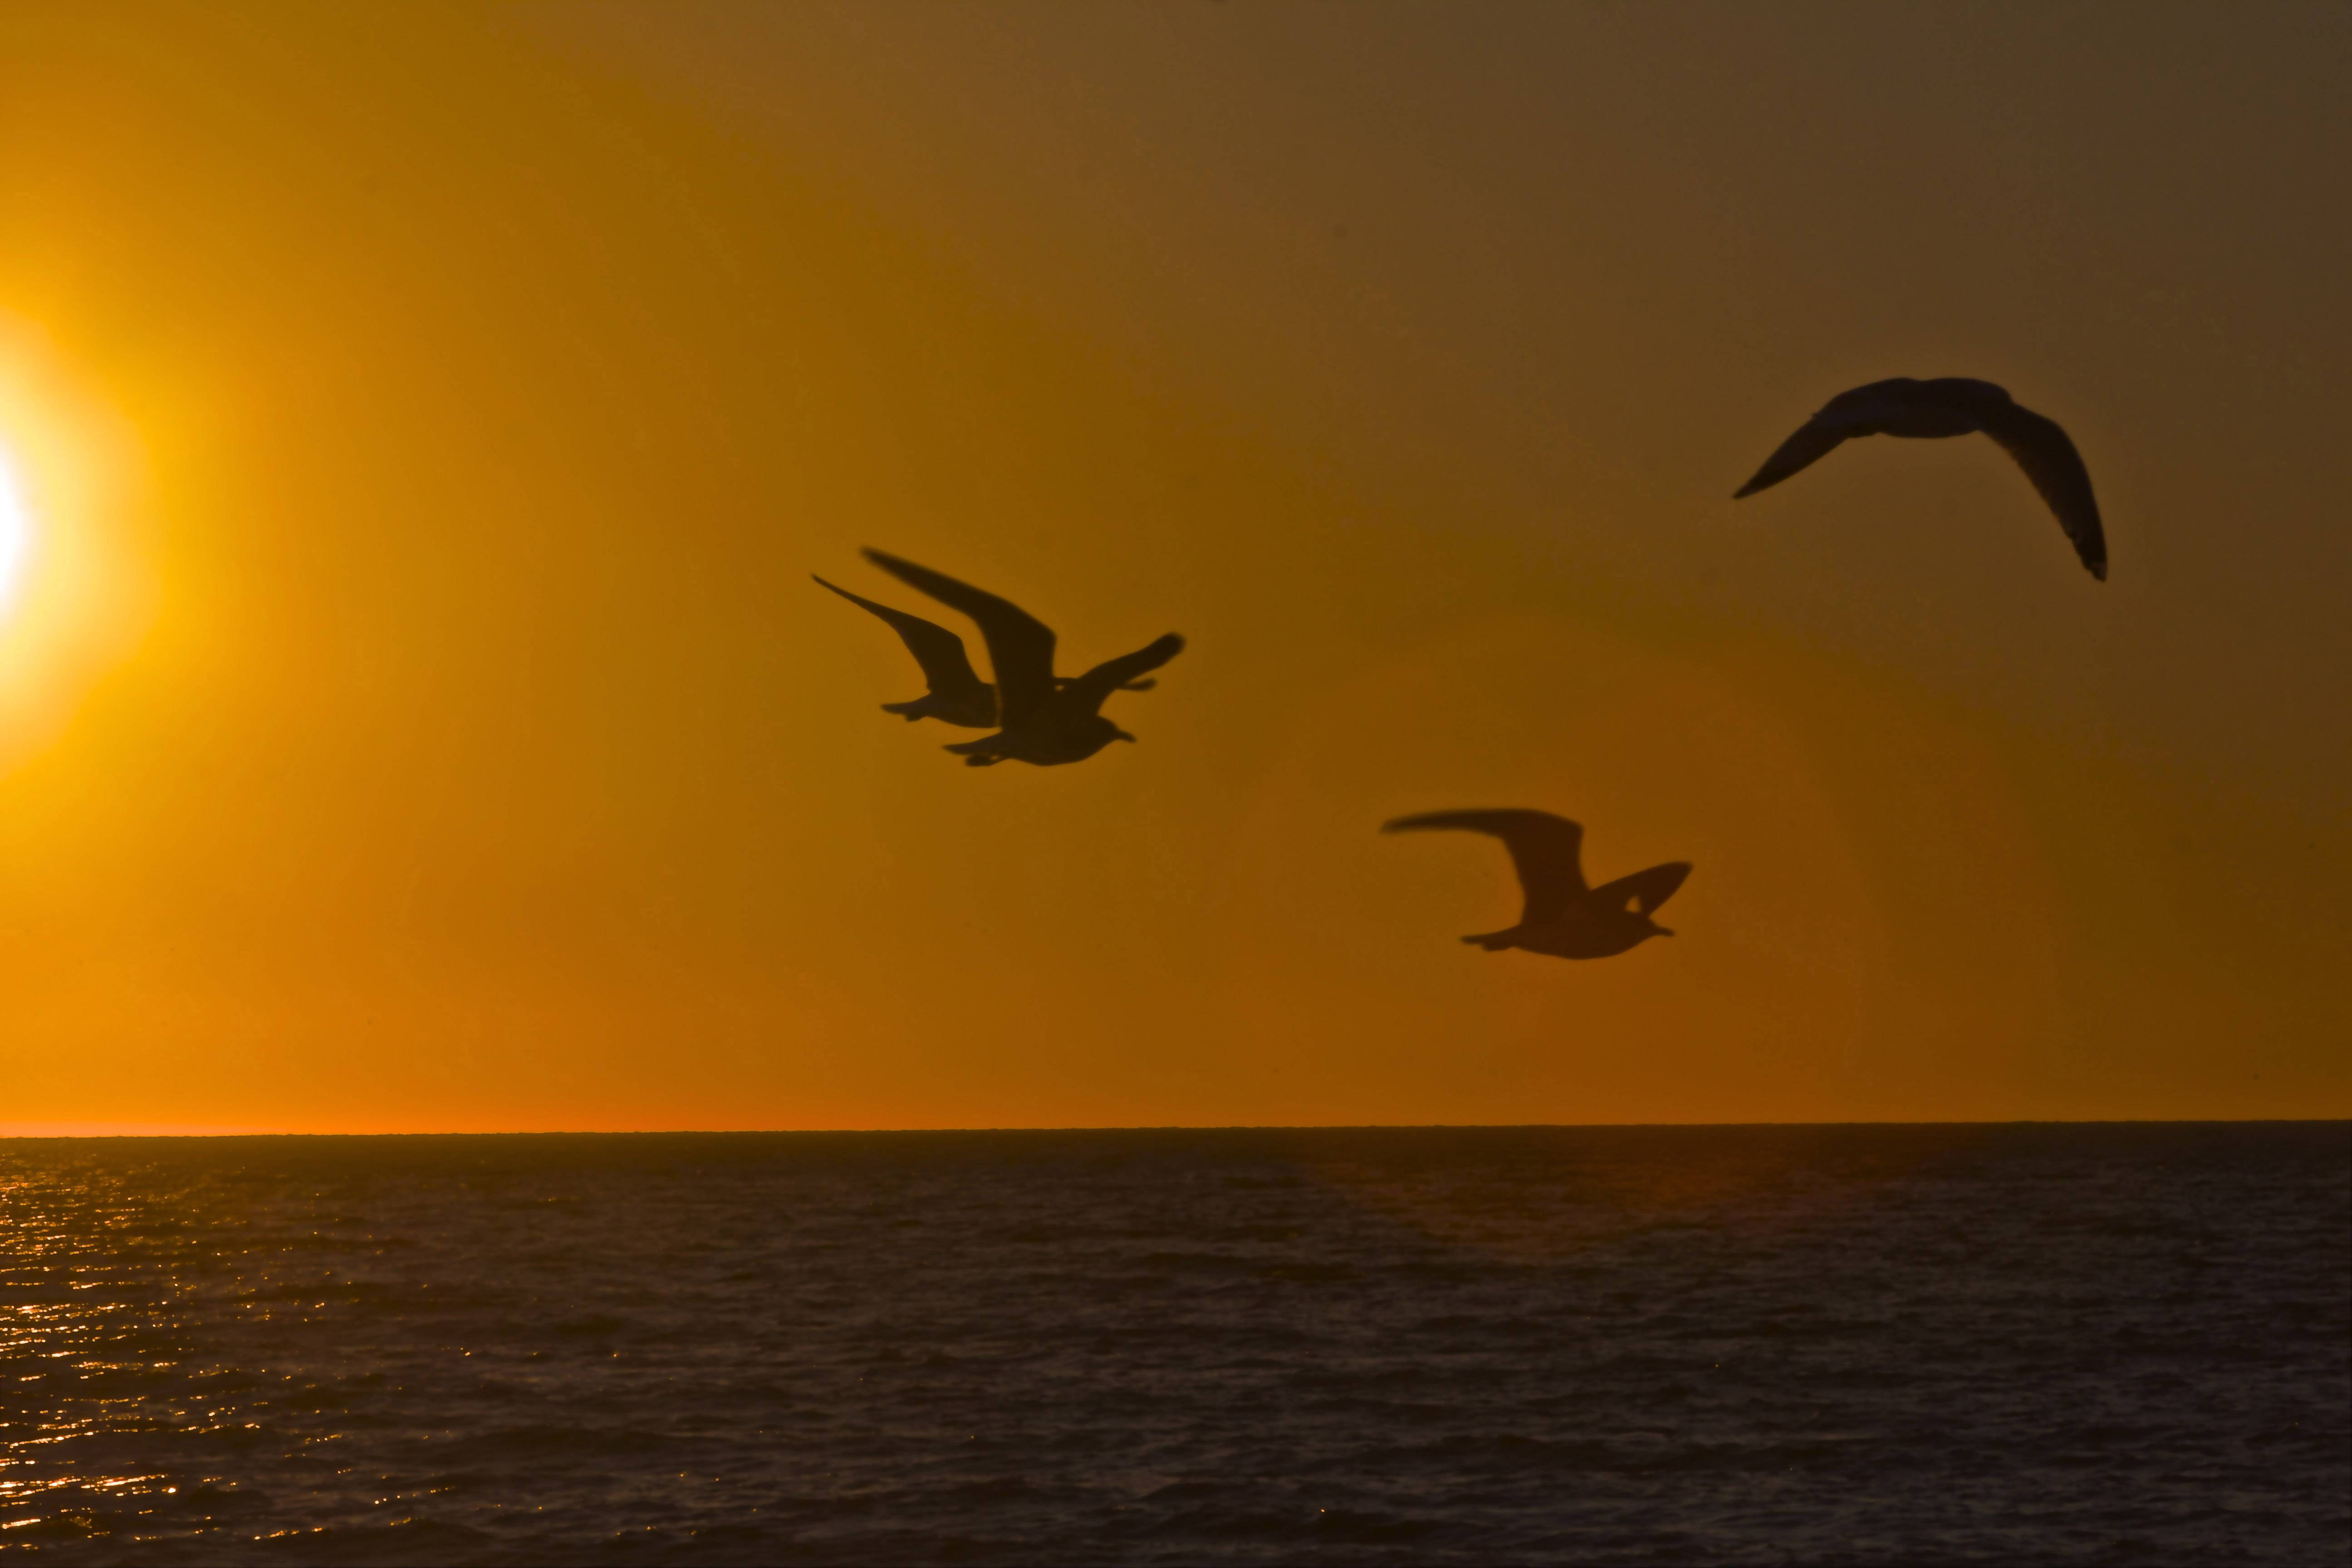 A group of gulls are in silhouette against the orange sky on Siesta Key, Florida a last month.